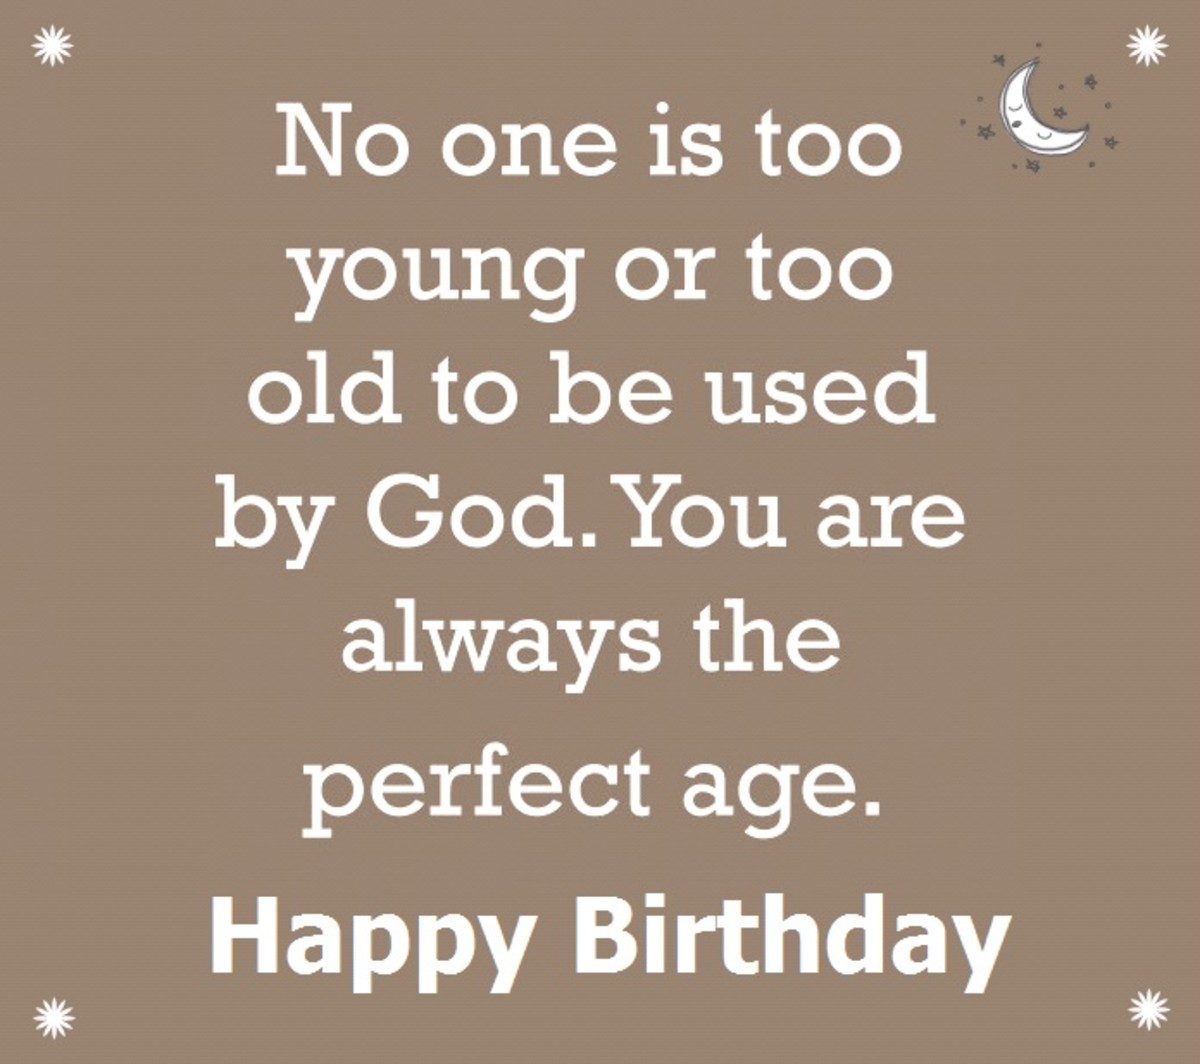 religious-birthday-wishes-for-a-friend